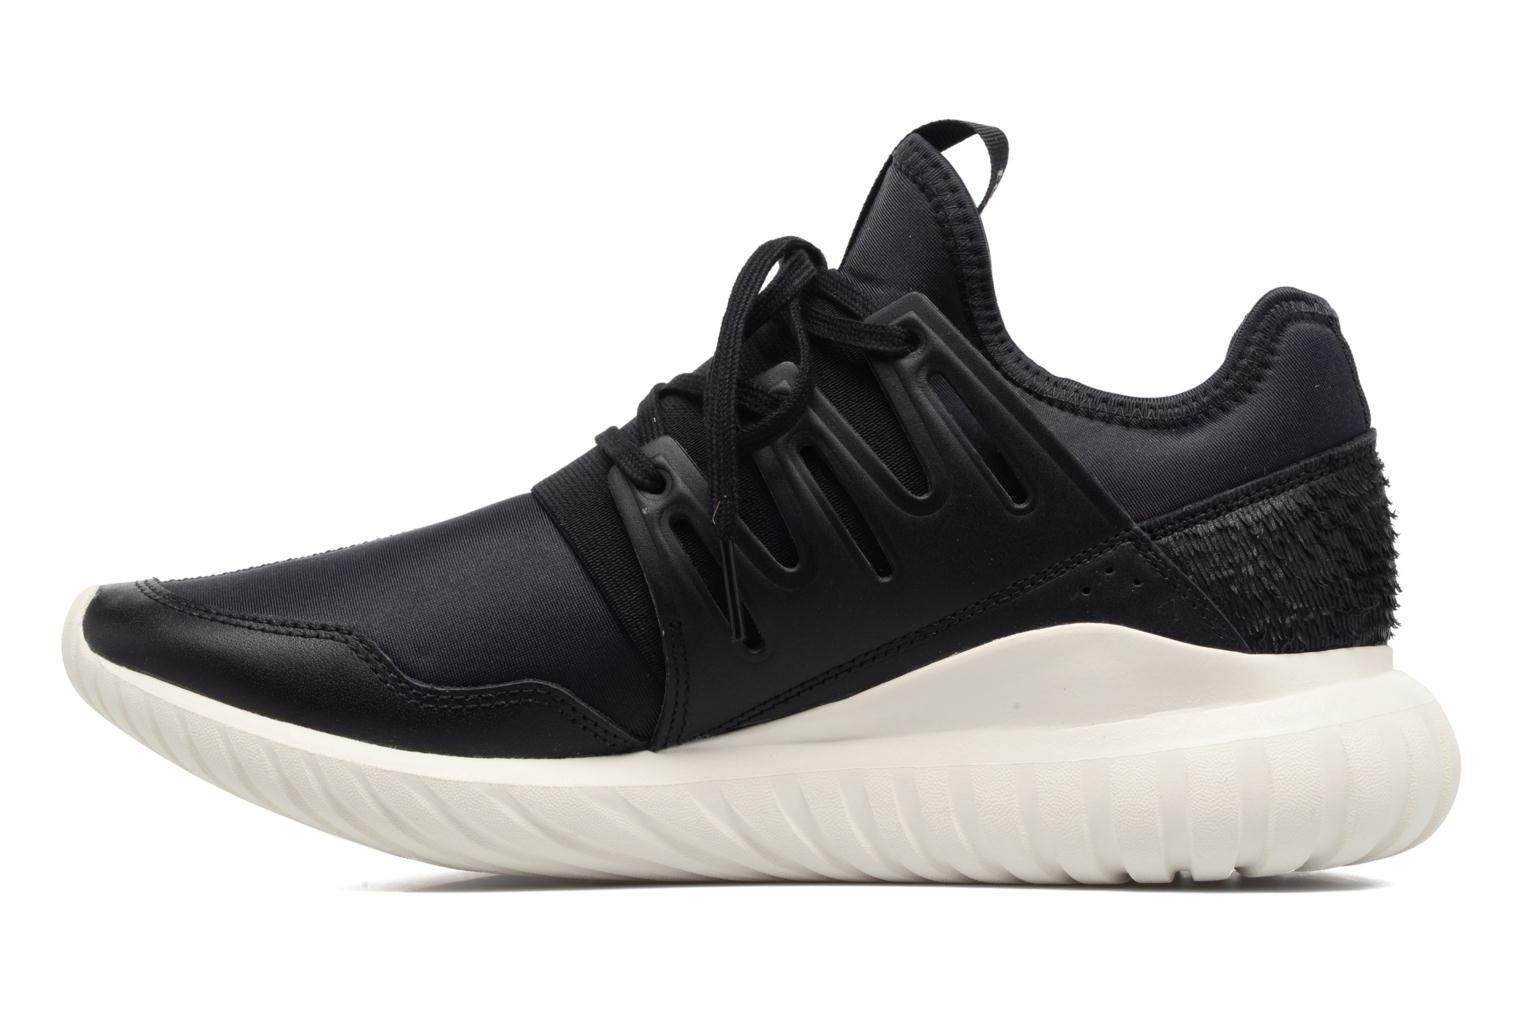 Baskets Adidas Originals Tubular Radial Cny Noir vue face